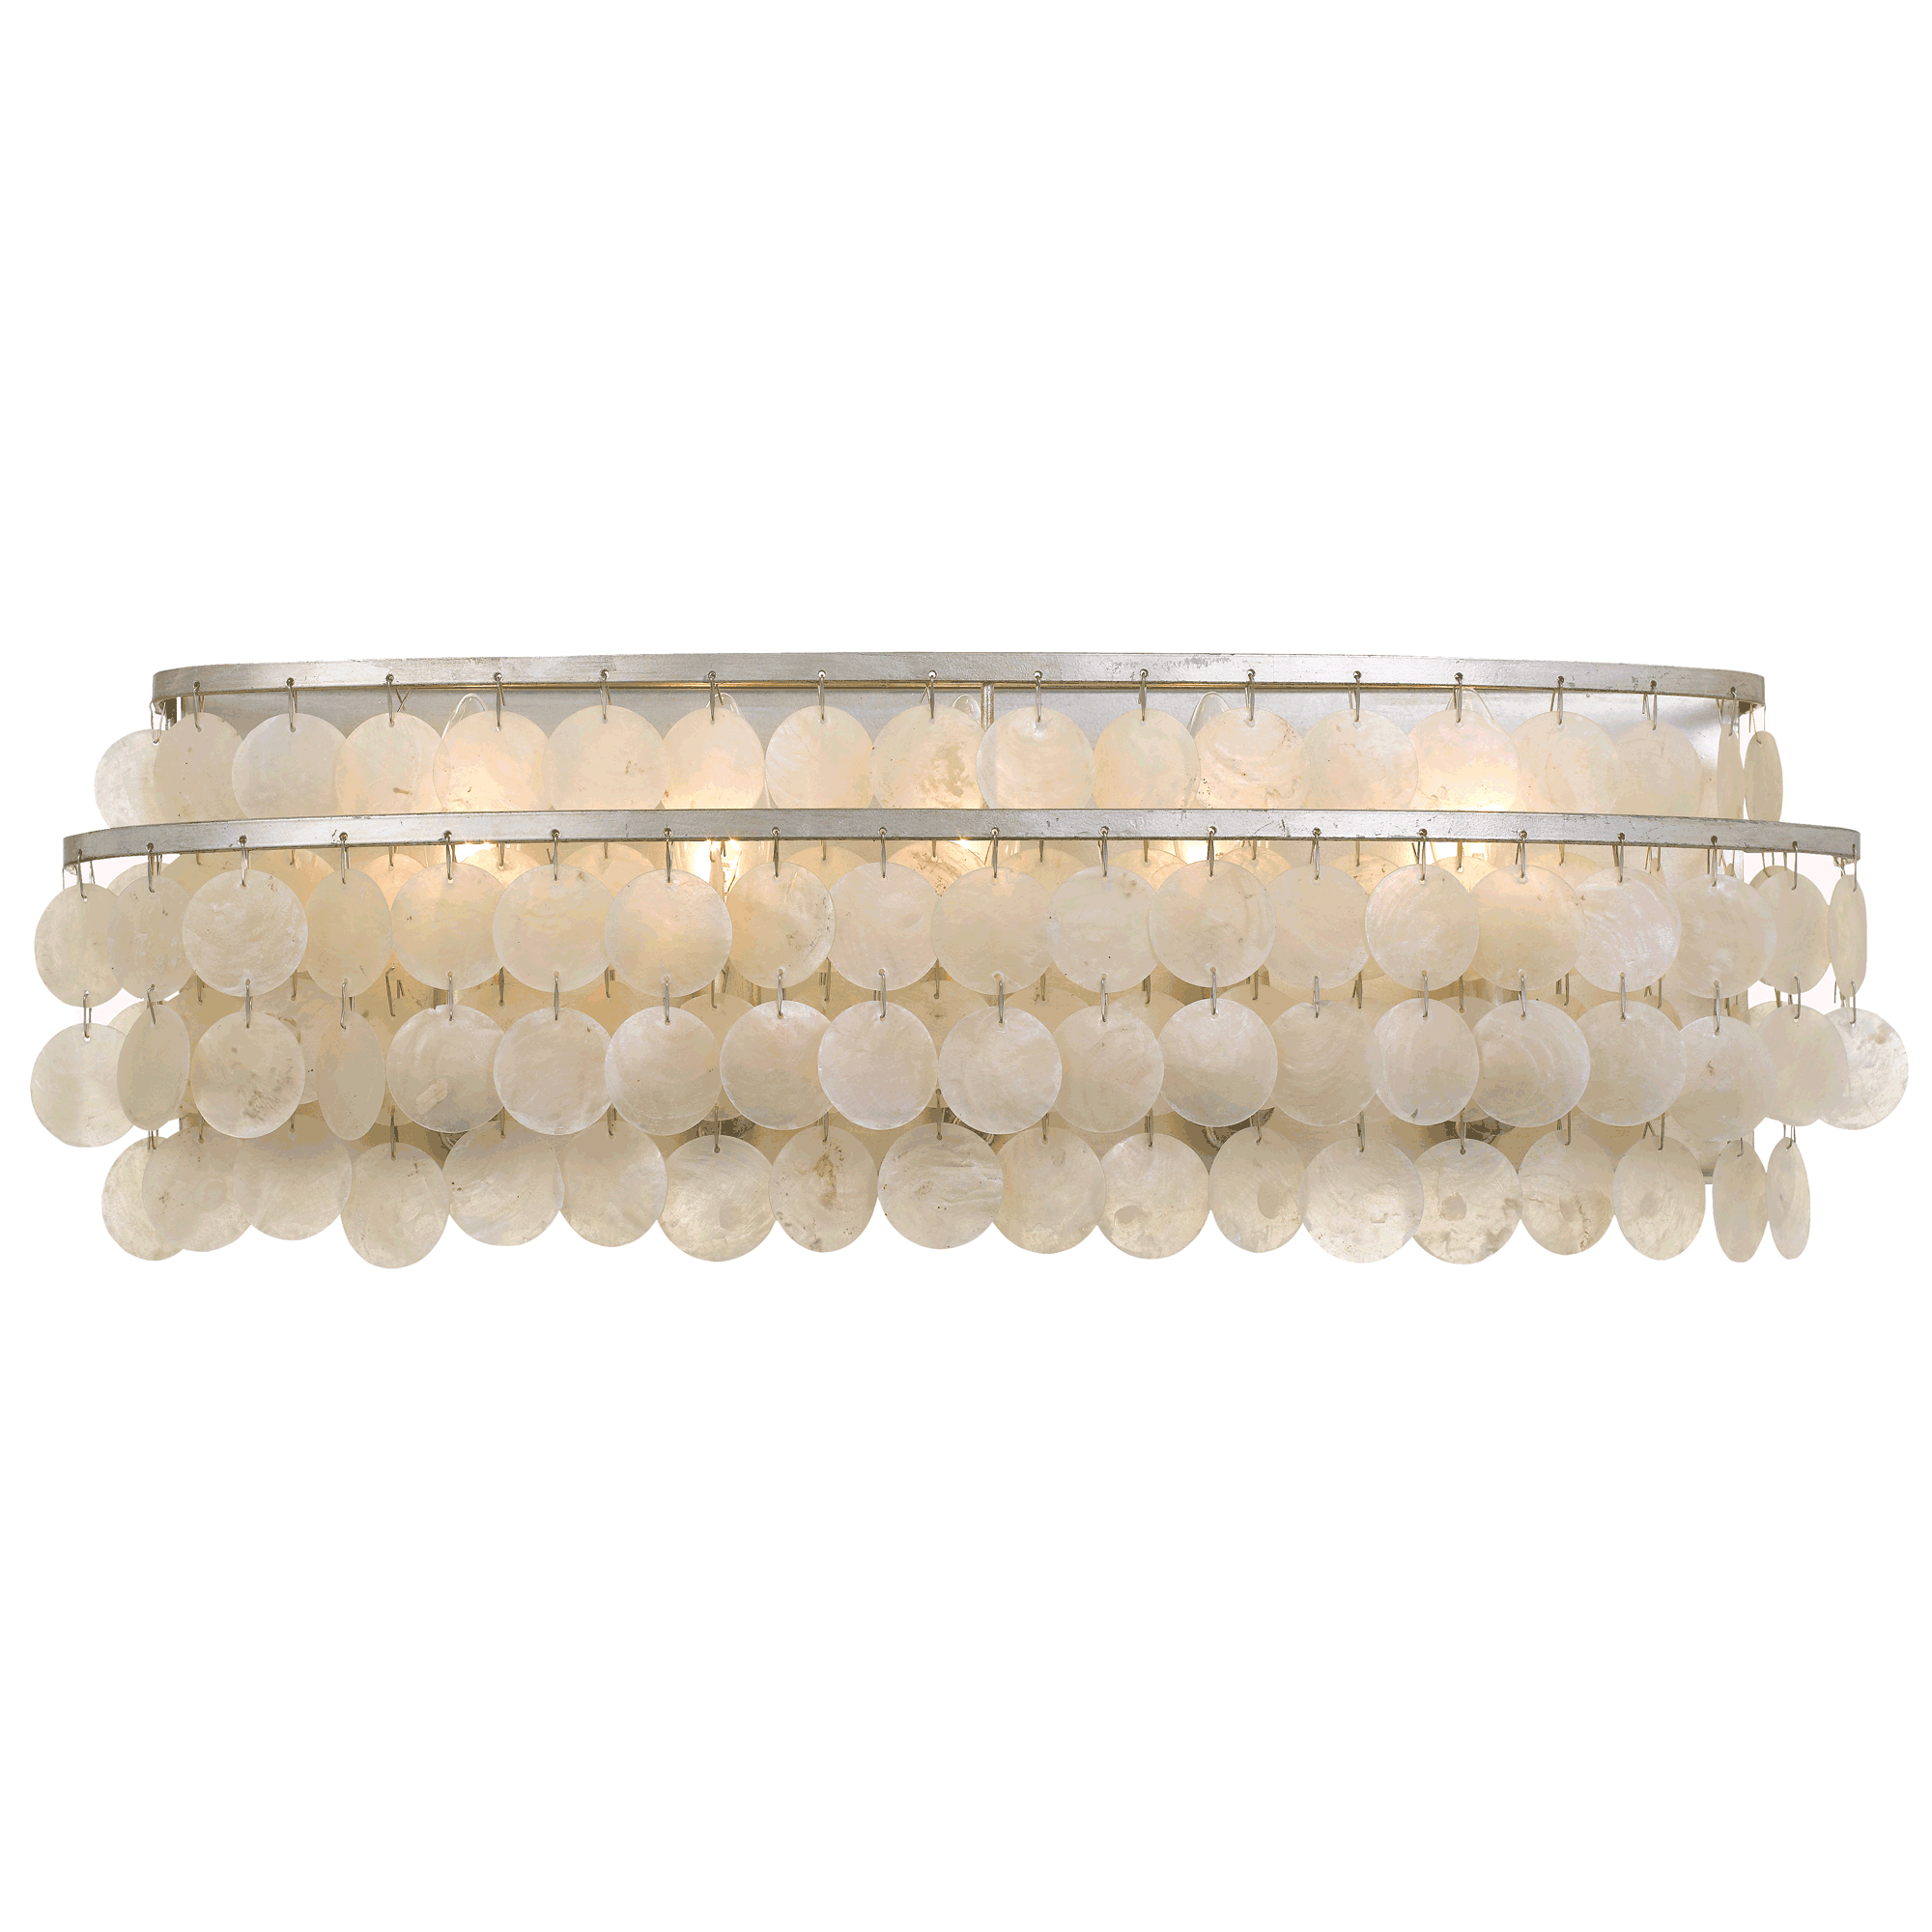 Brielle bathroom vanity light by crystorama bri 3005 sa